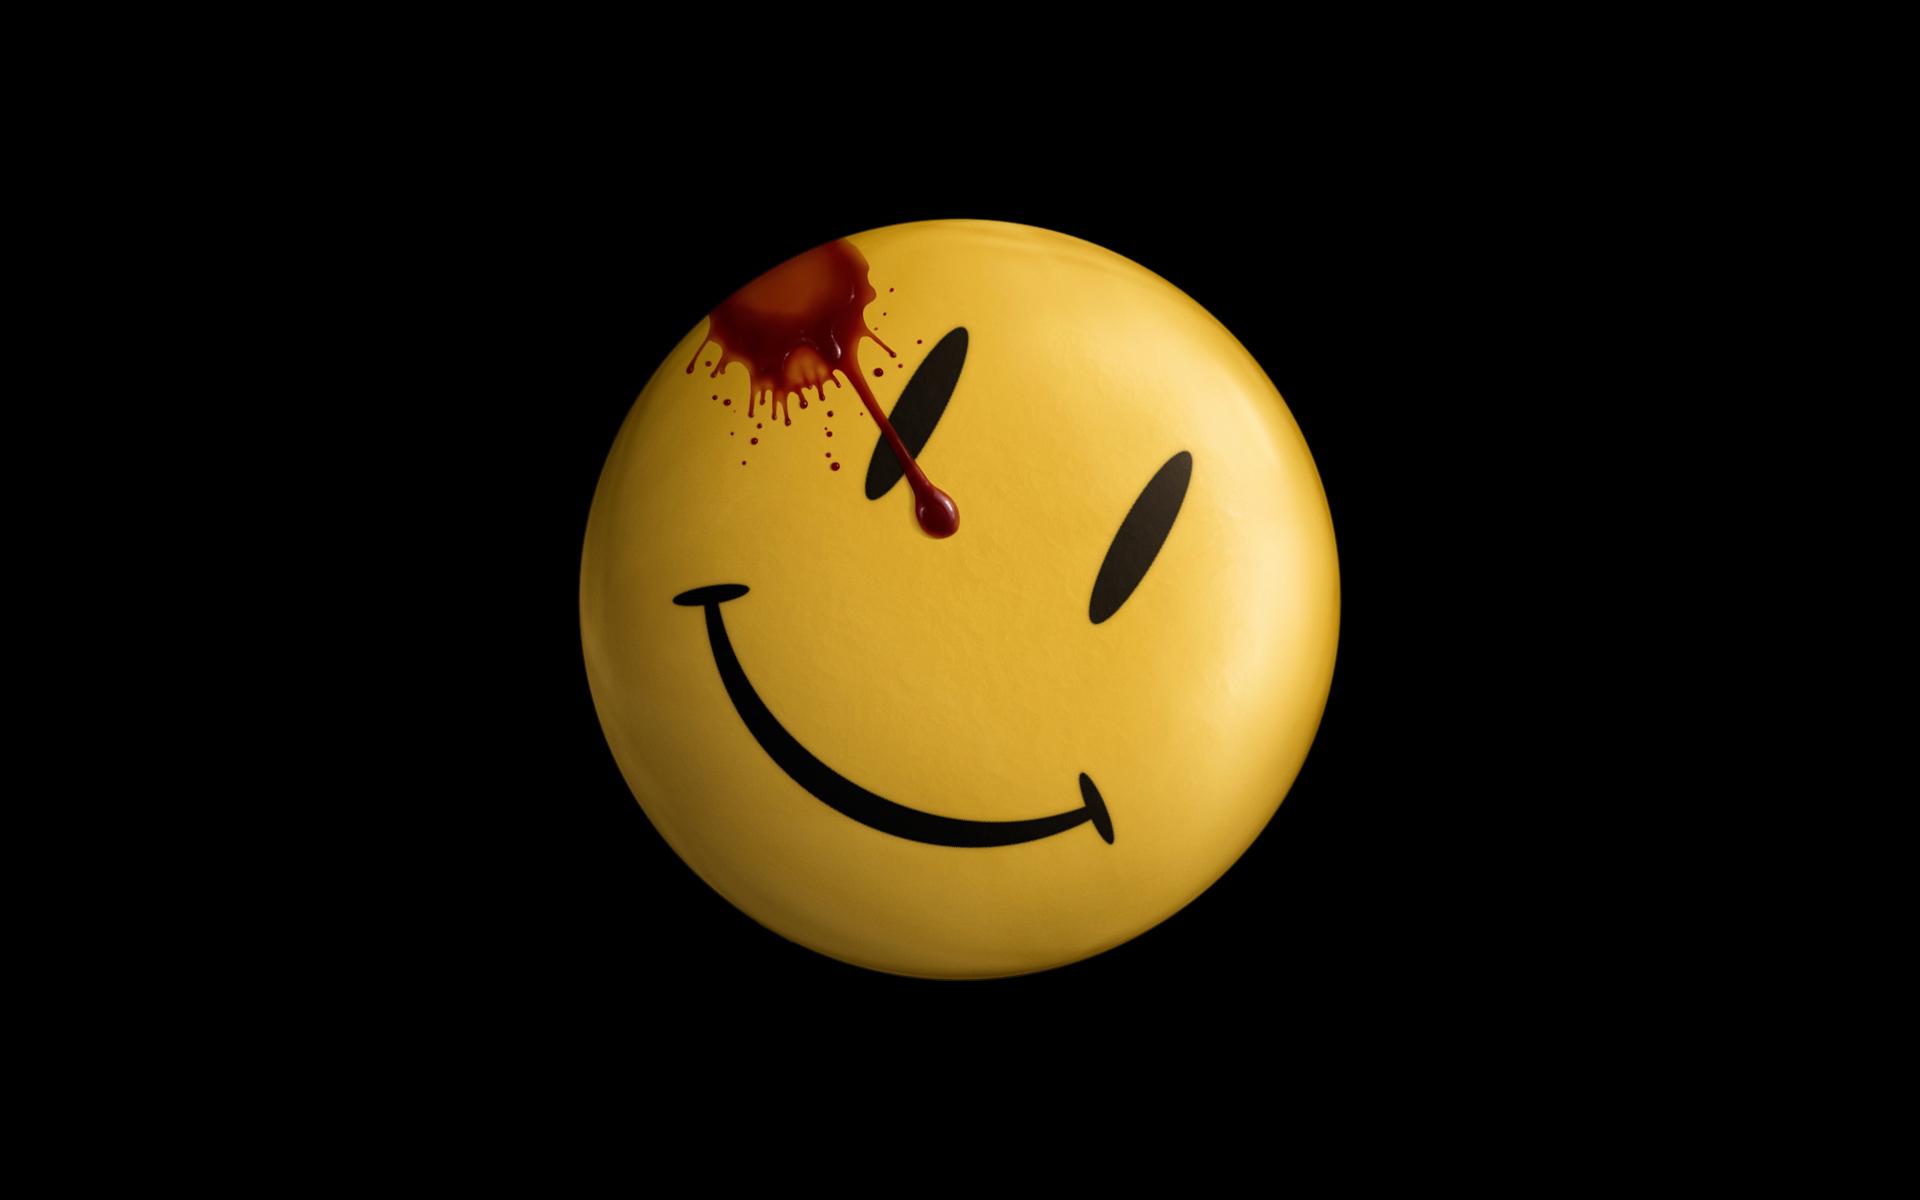 Watchmen smiley face Movie HD Wallpaper